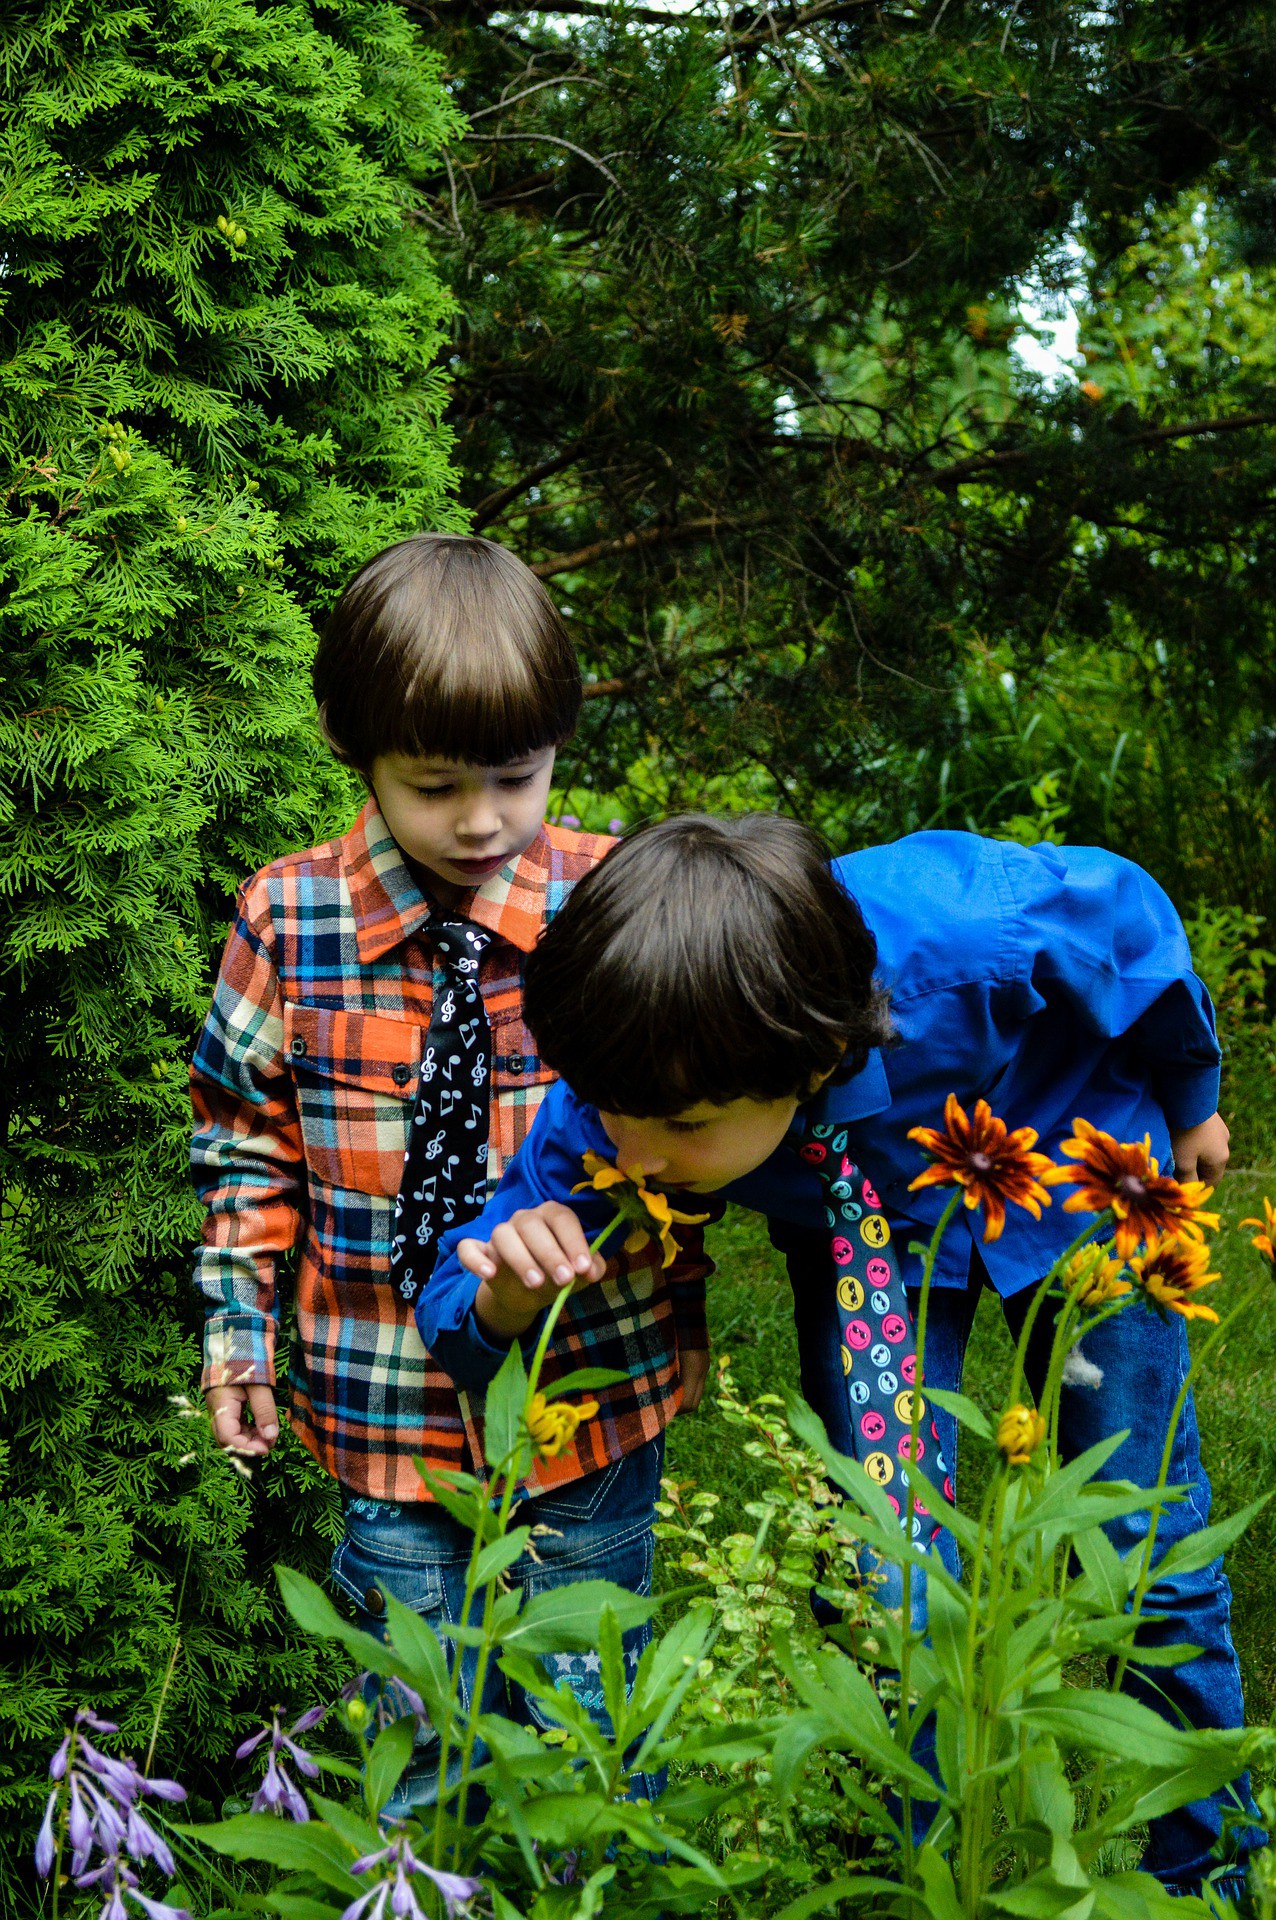 Two boys in button-down shirts are in the forest, and one is smelling a cone flower in bloom.